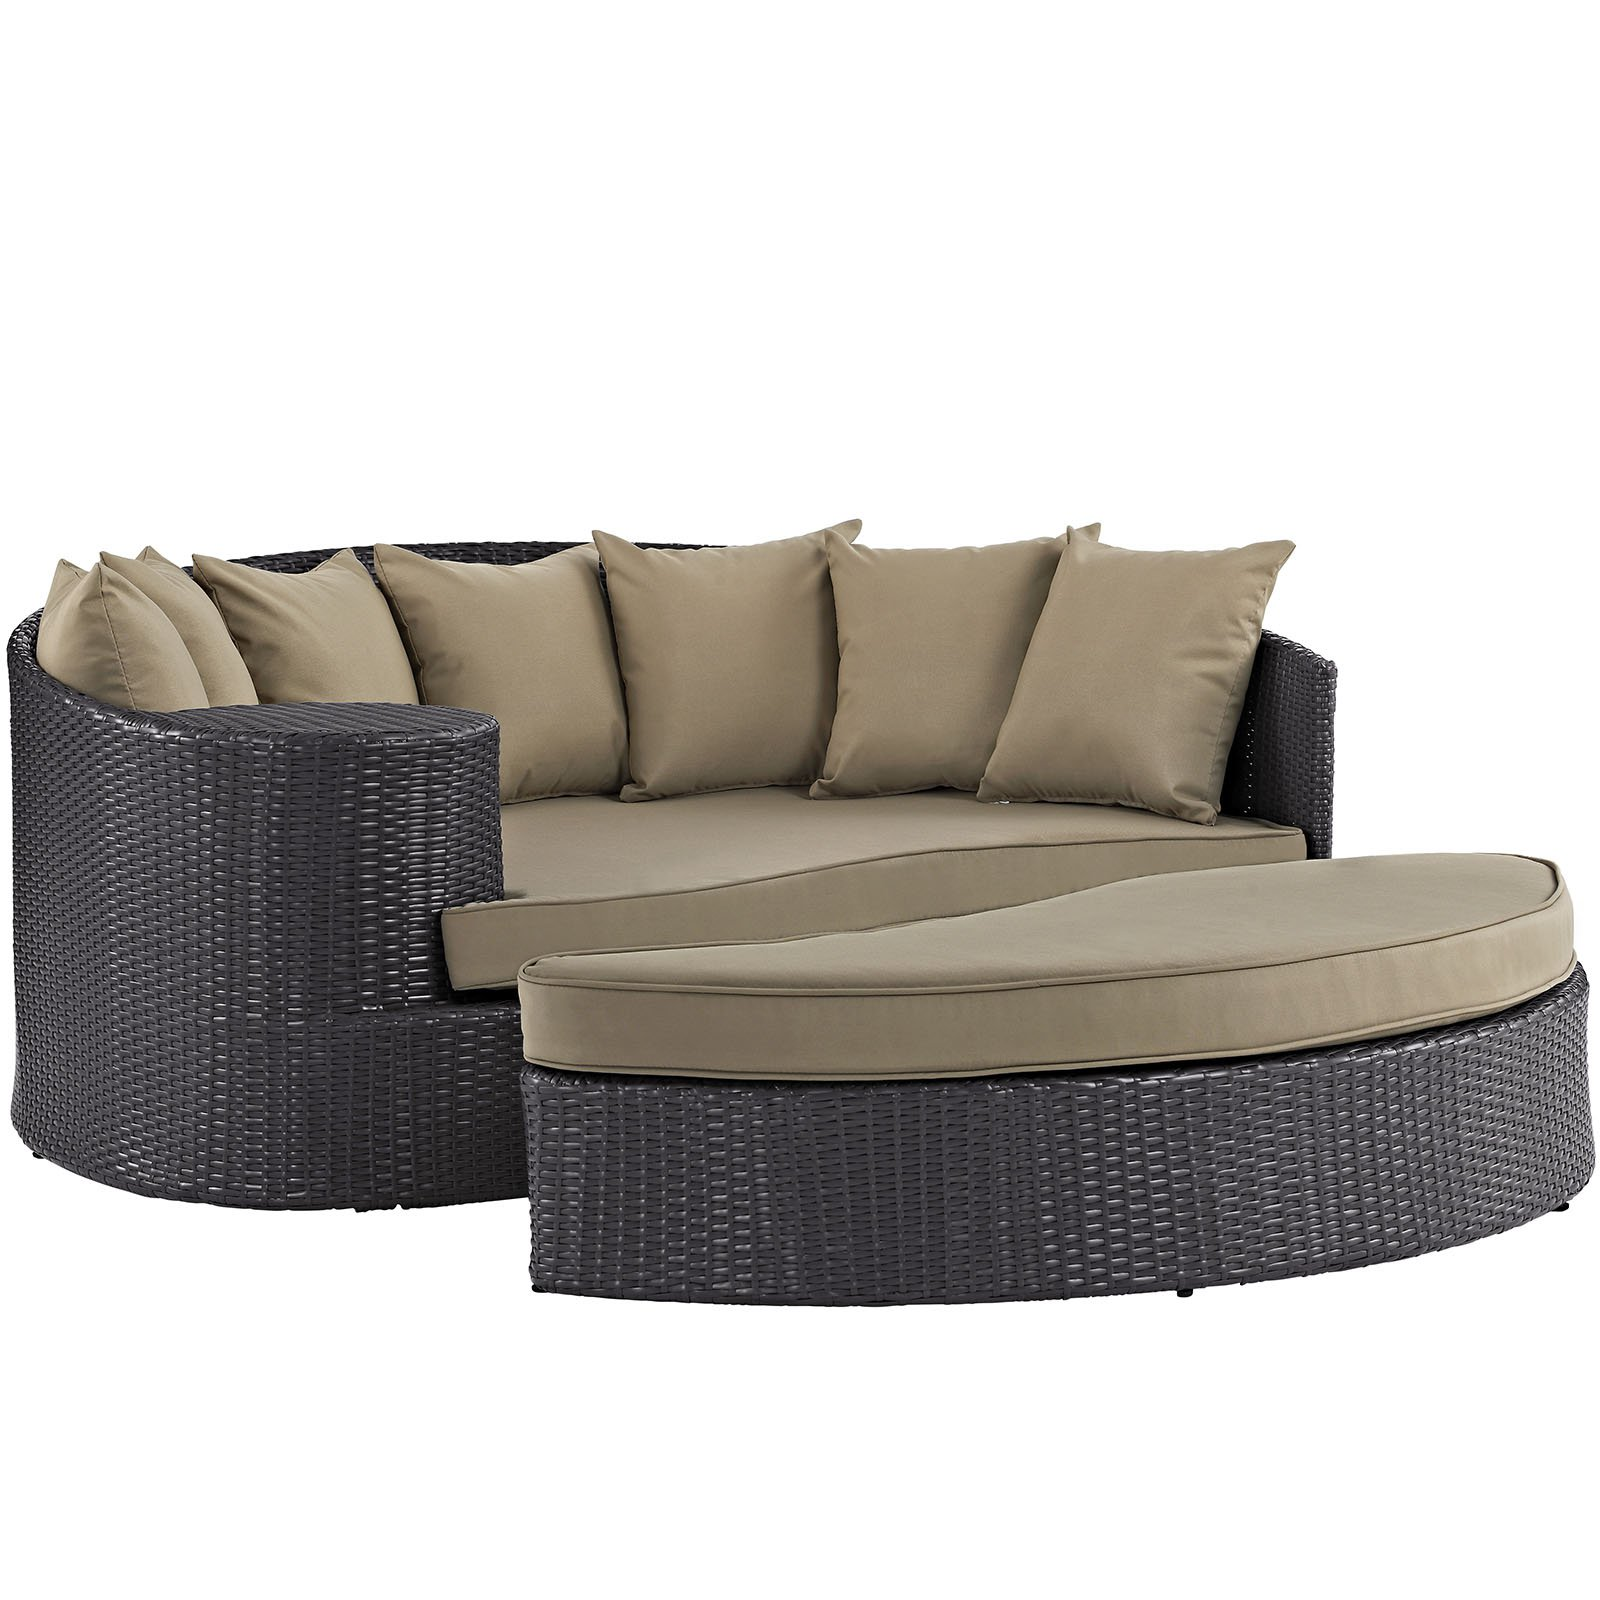 Modway Convene Outdoor Patio Daybed, Multiple Colors